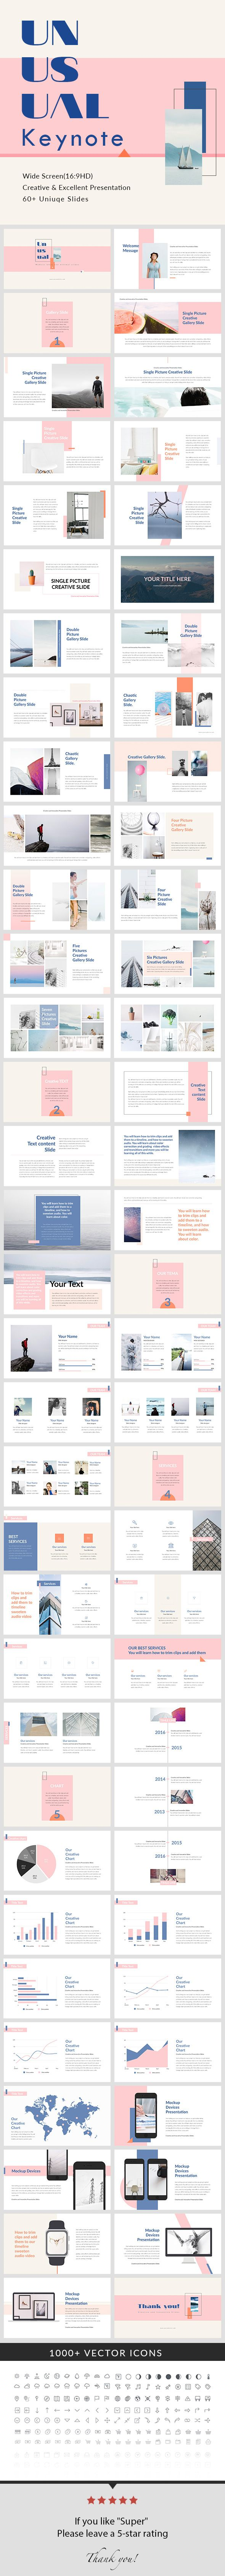 Unusual - Keynote Presentation Template - Creative Keynote Templates. Unique Presentation design.